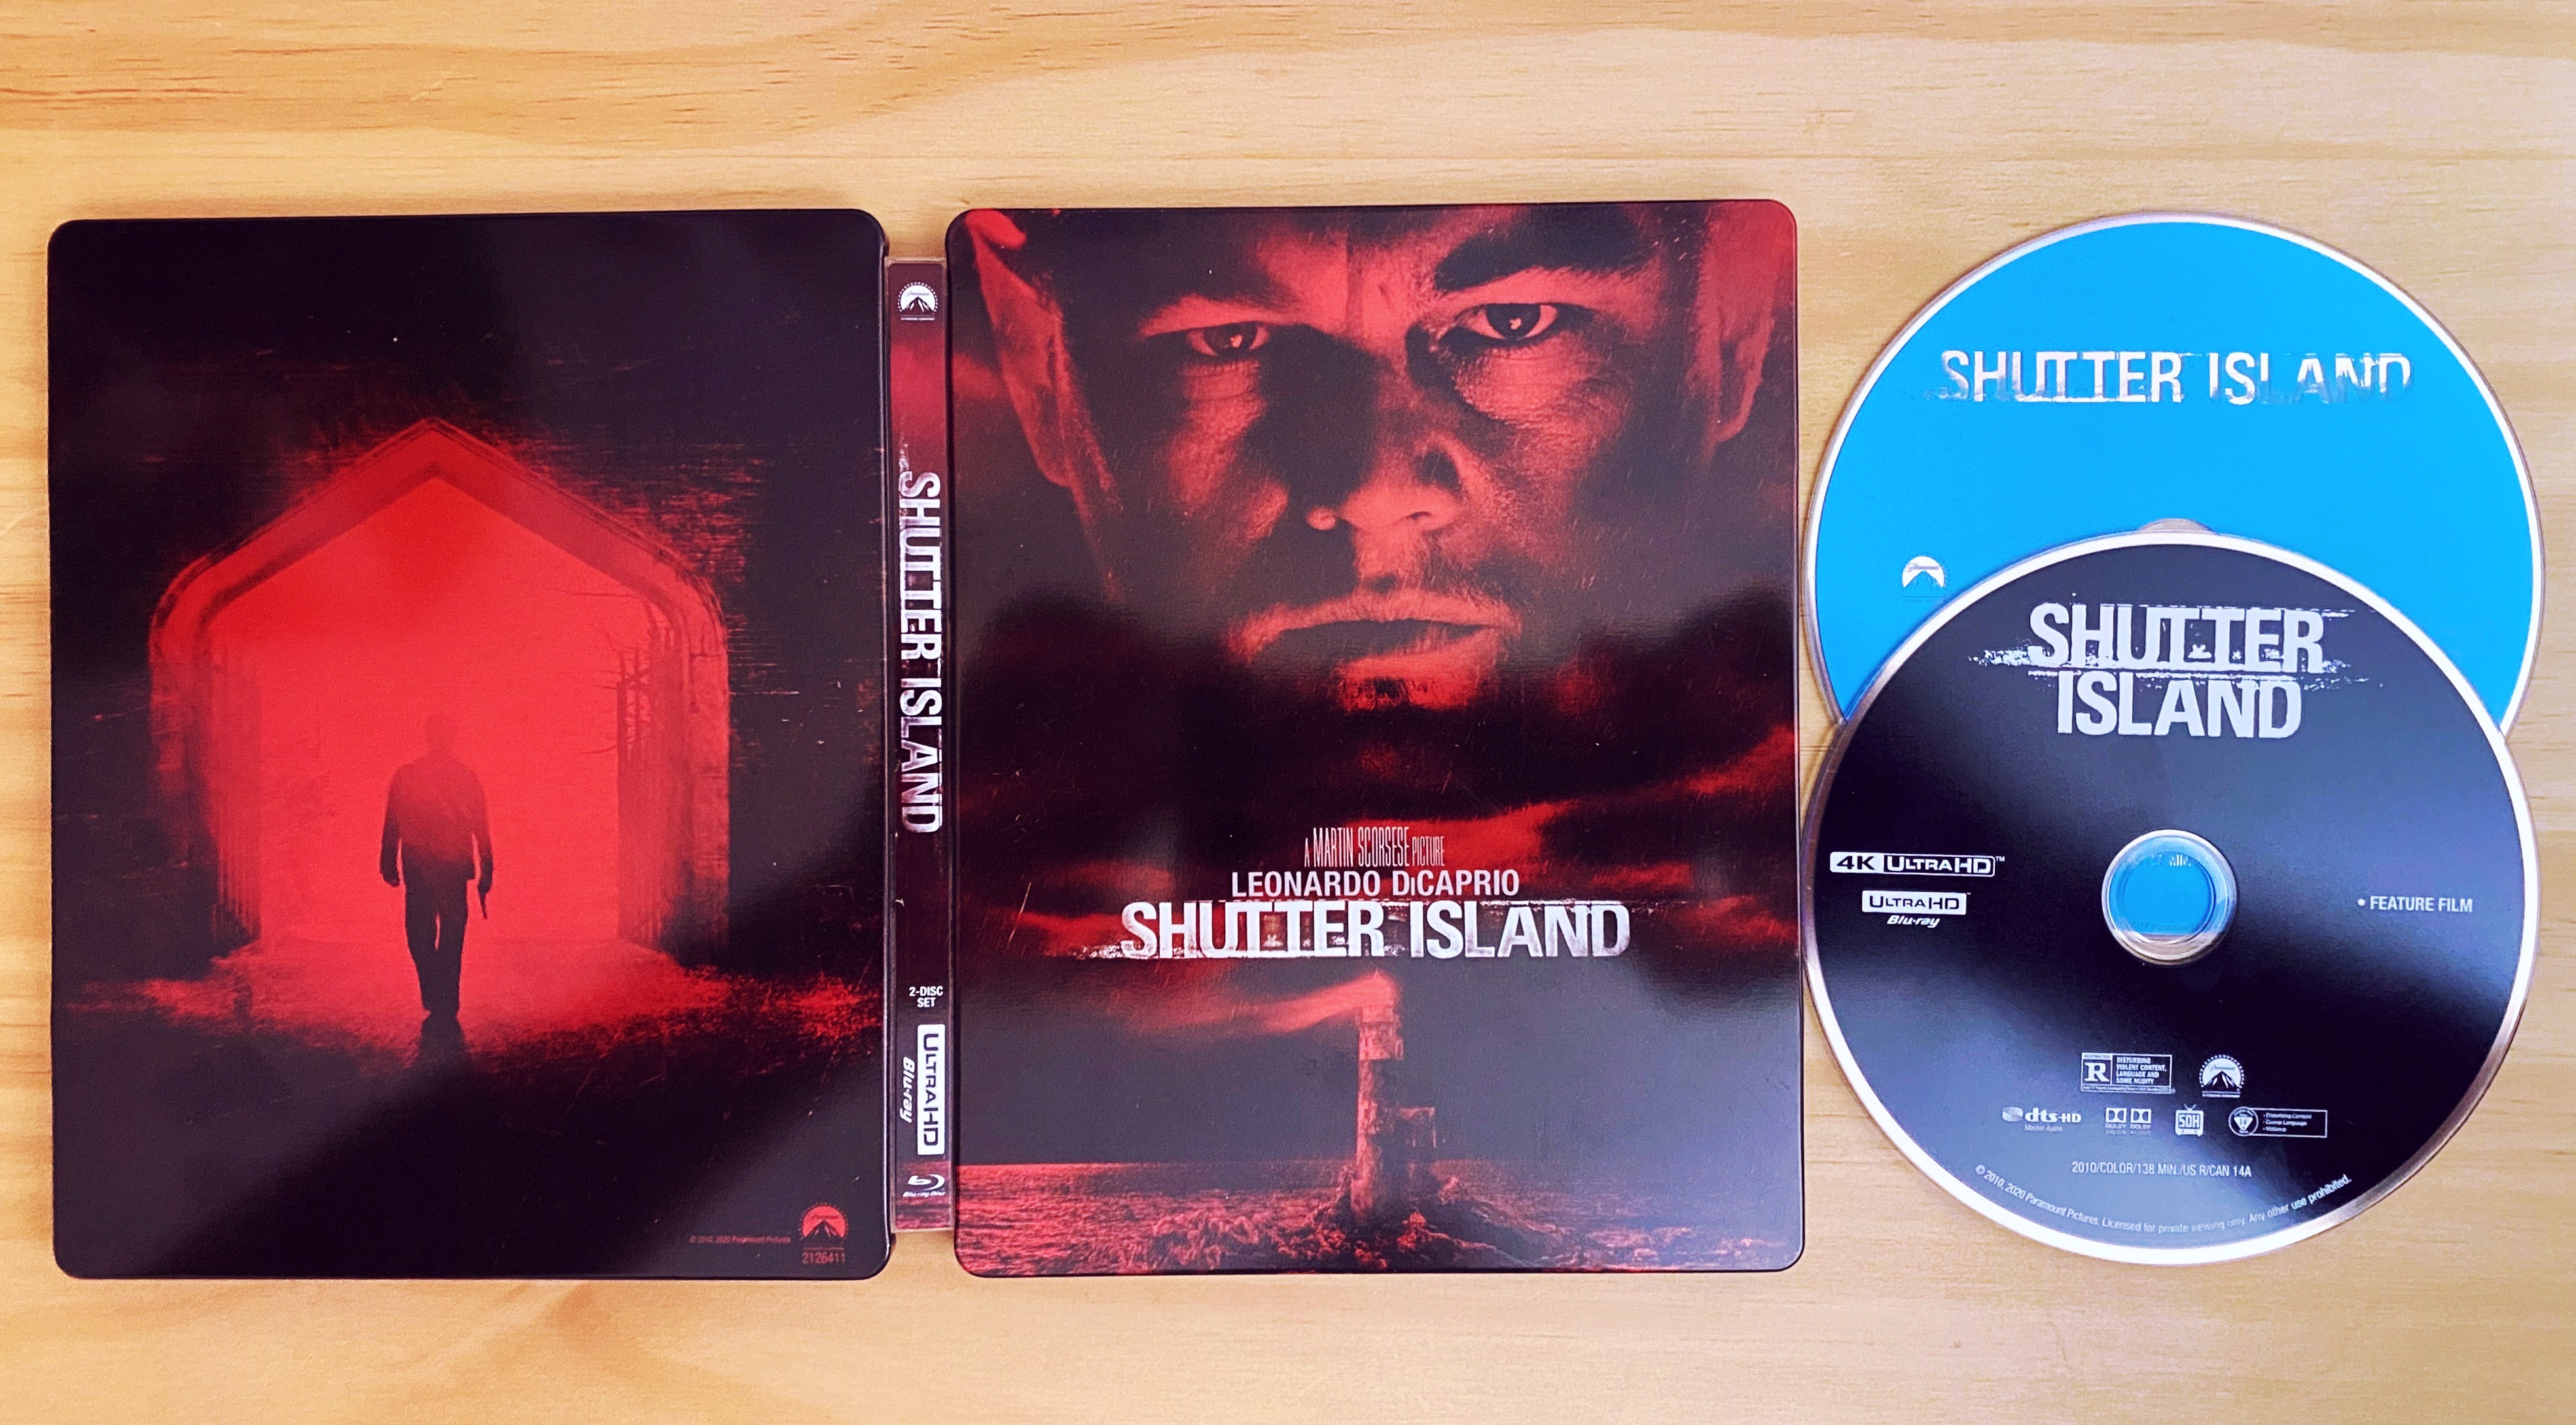 Shutter Island Steelbook - Cover and Discs